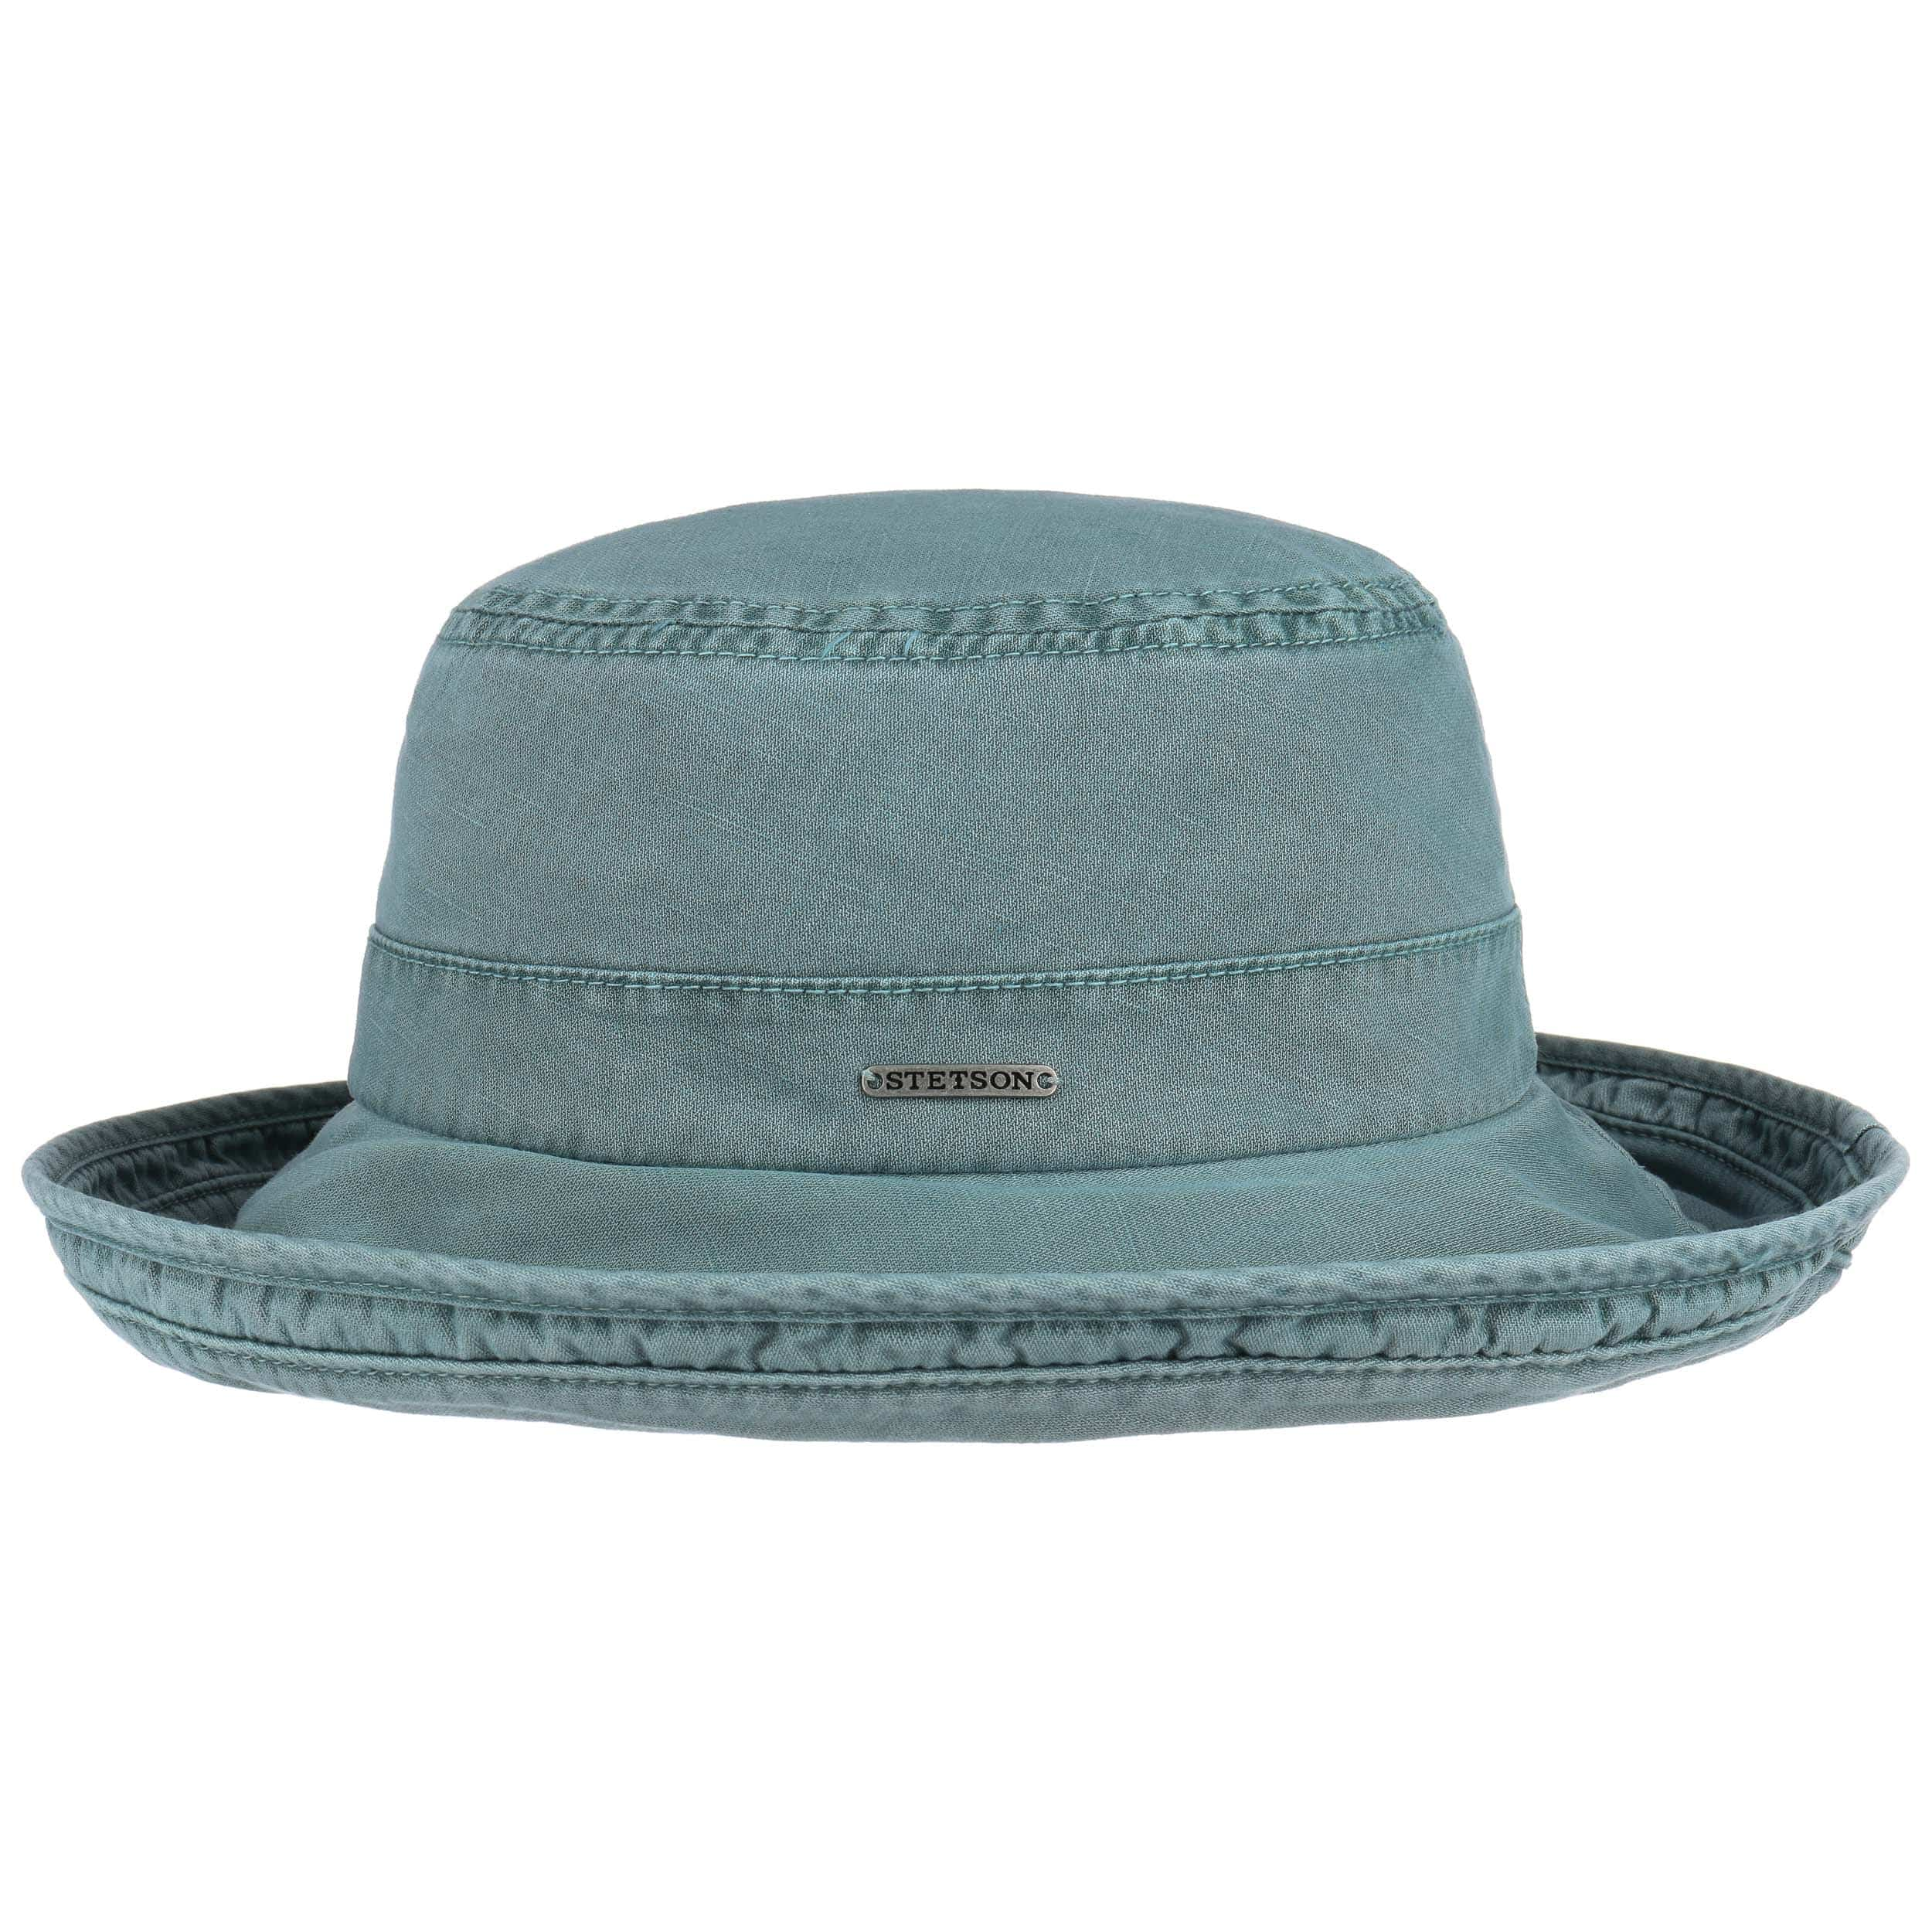 Dyed Cotton Floppy Hat by Stetson Sun hats Stetson